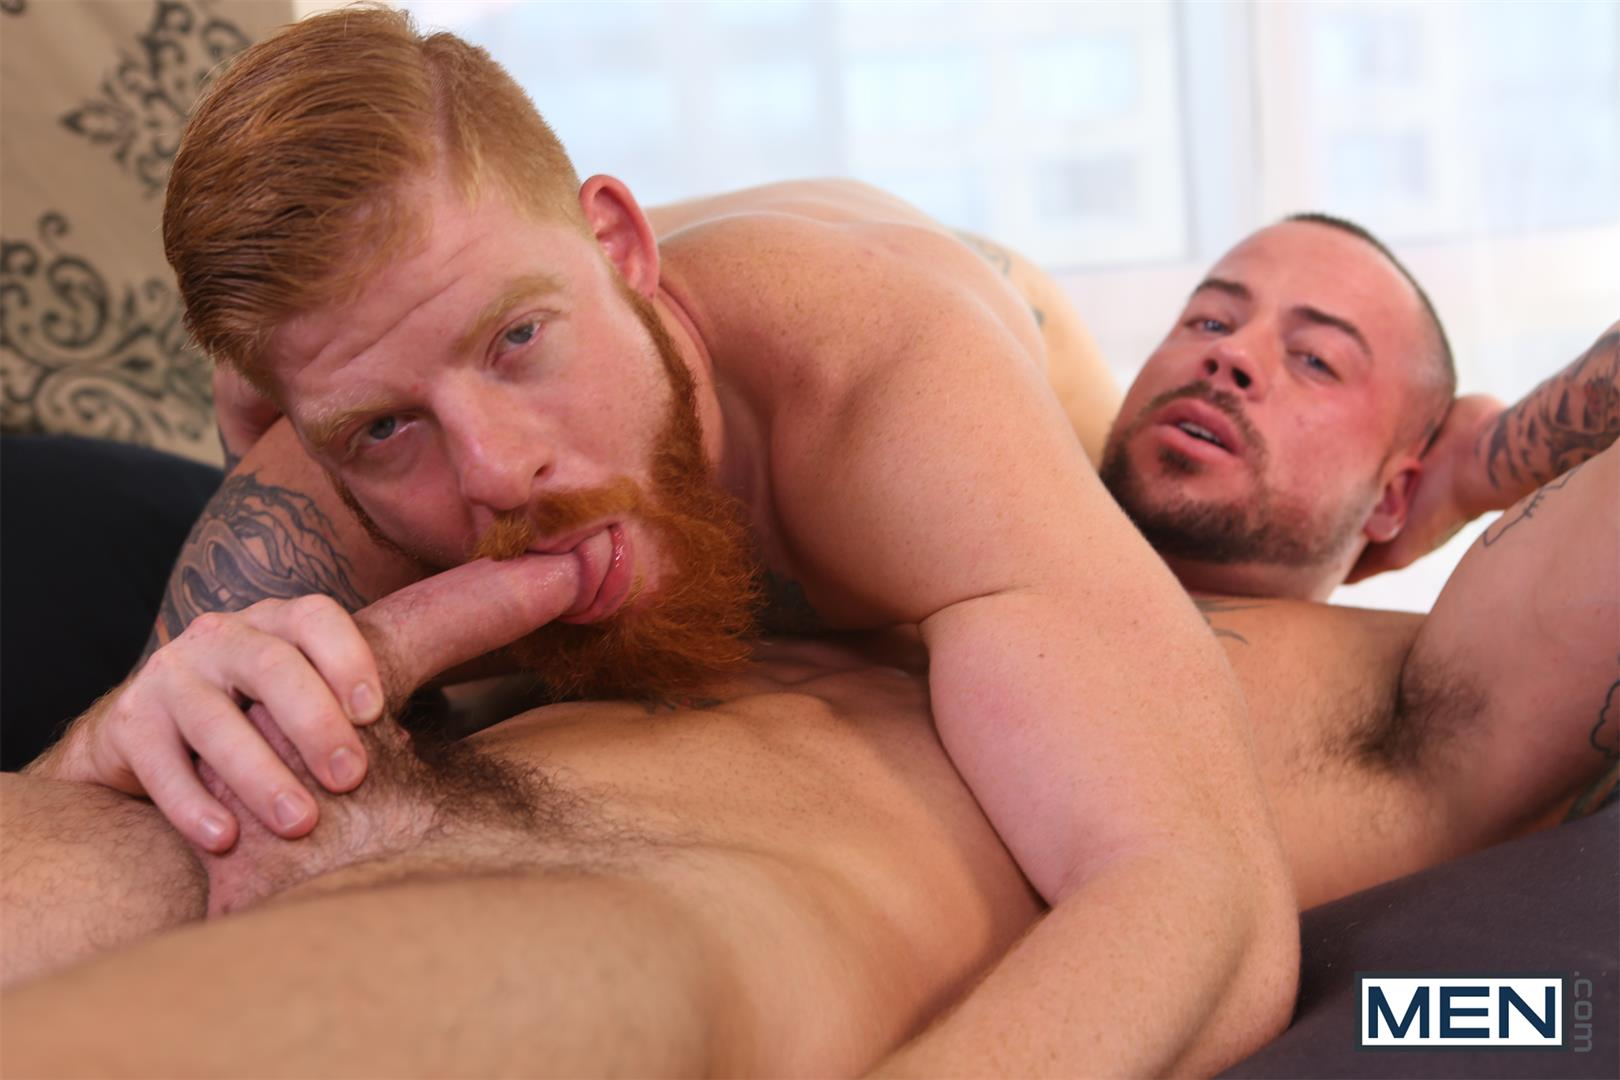 Men-Bennett-Anthony-and-Sean-Duran-Naked-Redhead-Muscle-Guys-Fucking-Amateur-Gay-Porn-10 Bennett Anthony Fucking A Muscle Hunk With His Big Ginger Cock